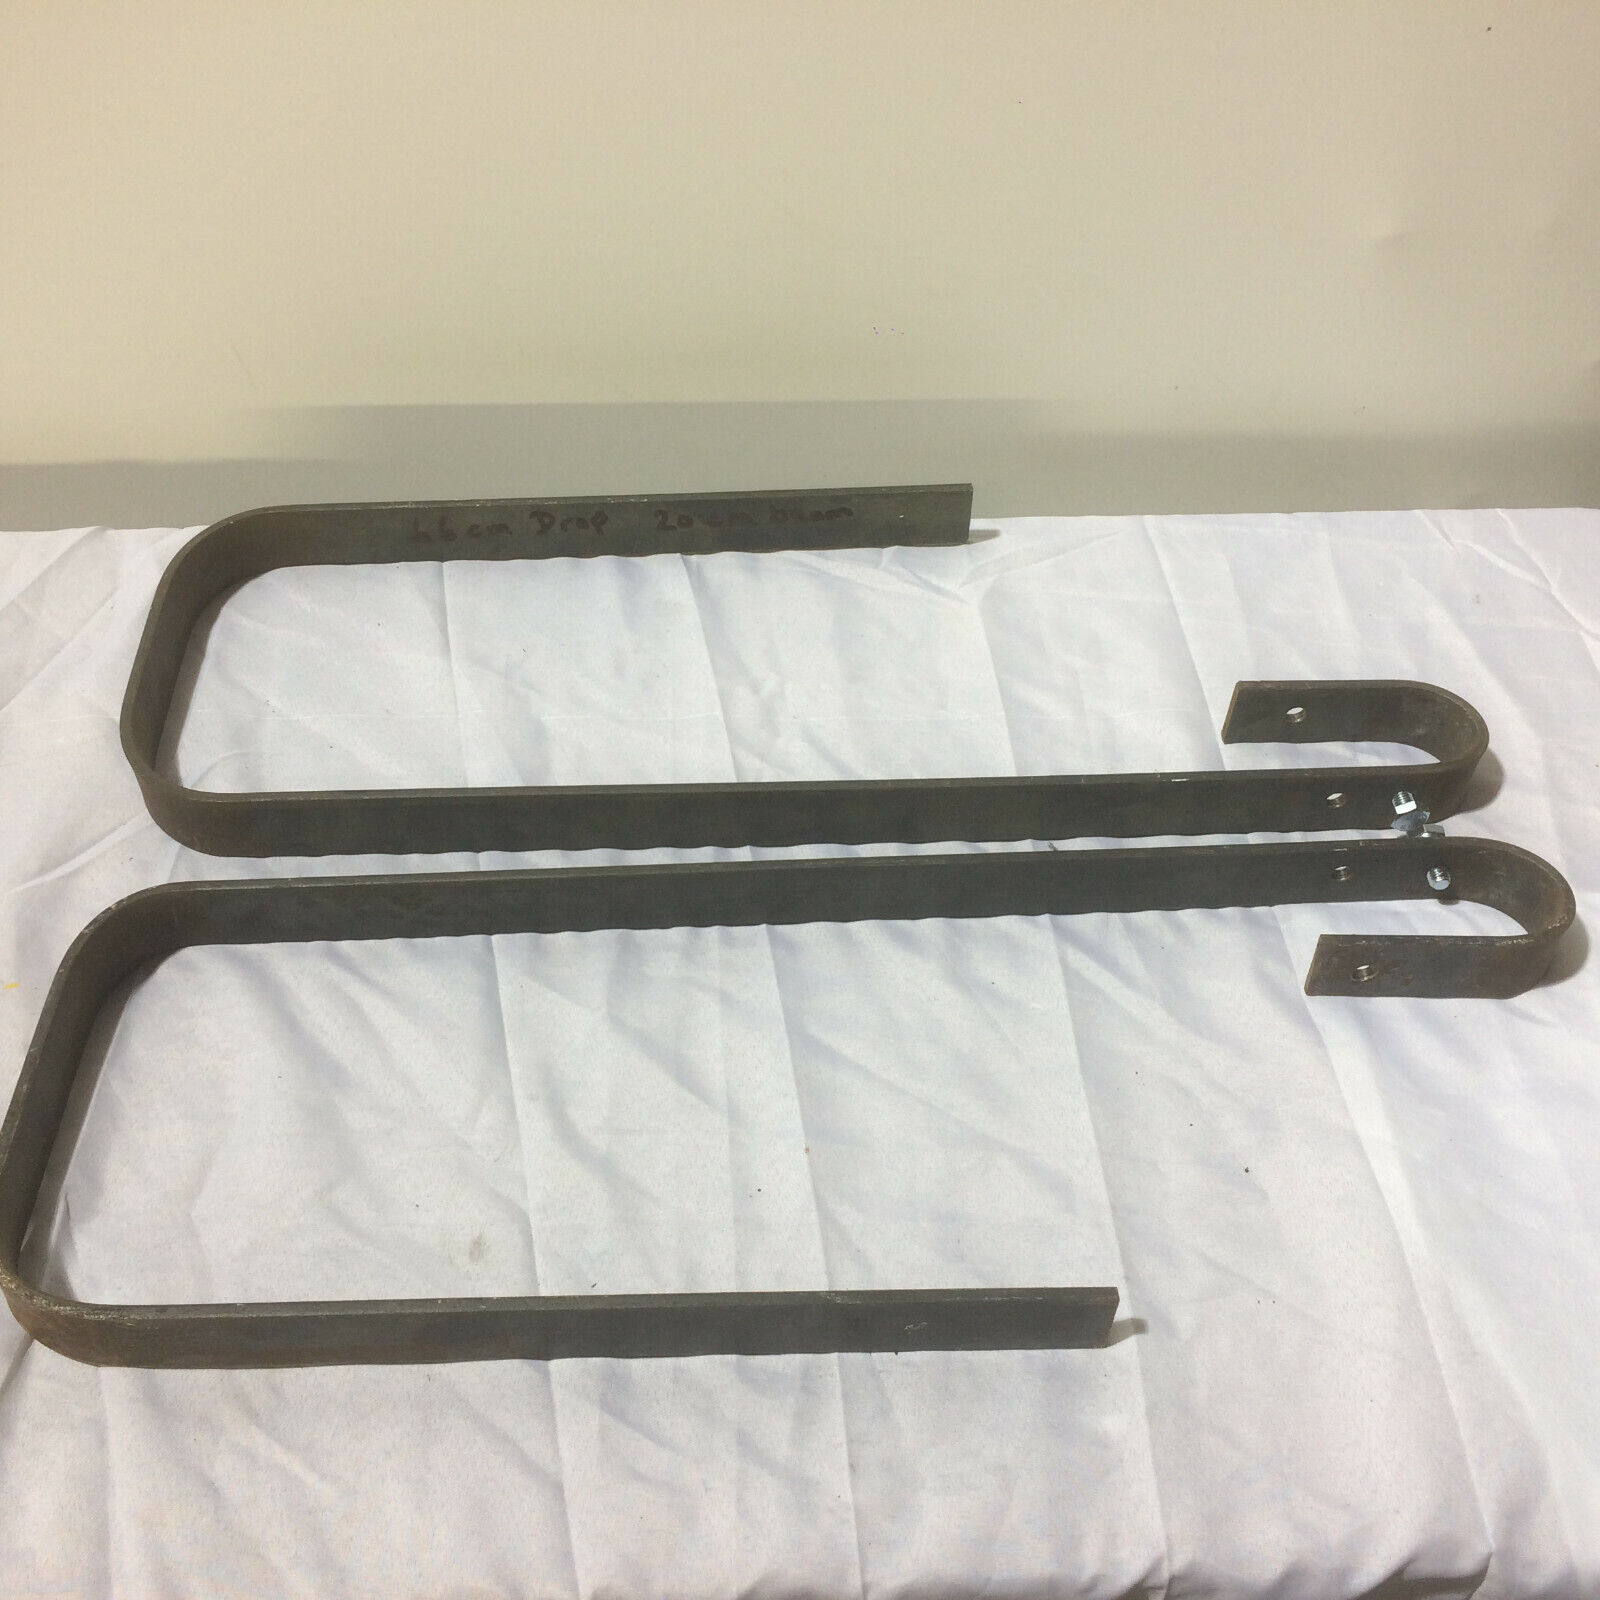 Pair of Mild Steel Hanging Brackets - suspend a scaffold bar from 20cm wood beam